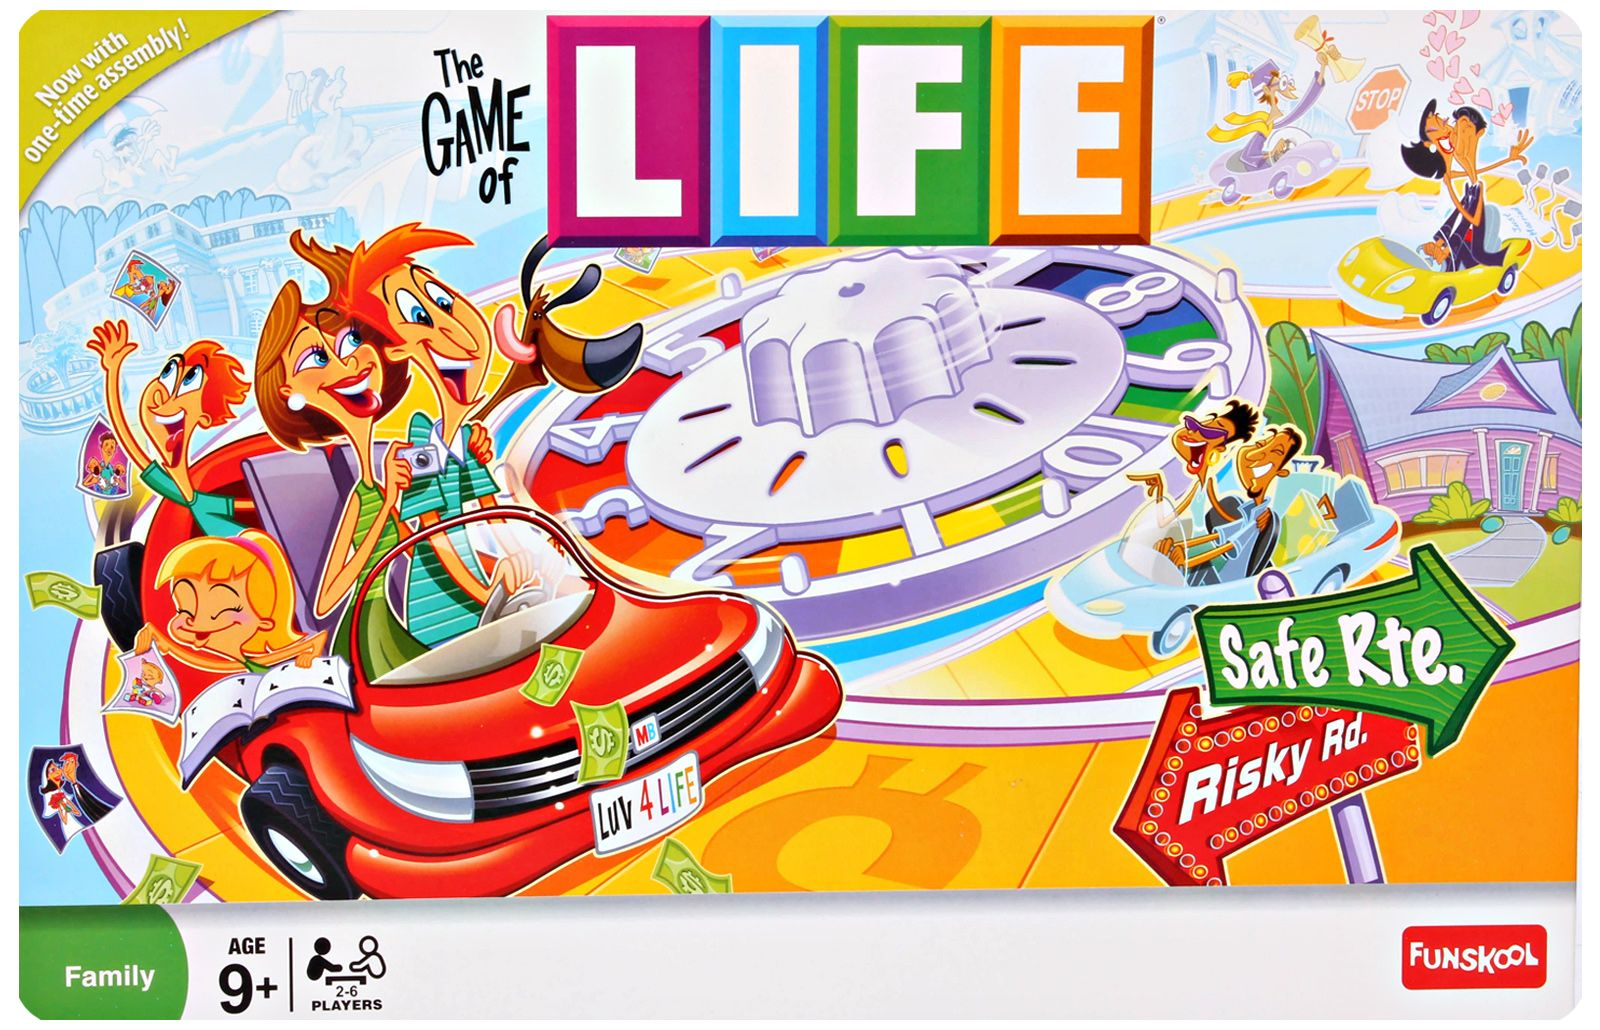 The game of life template 91989 enews the game of life template maxwellsz